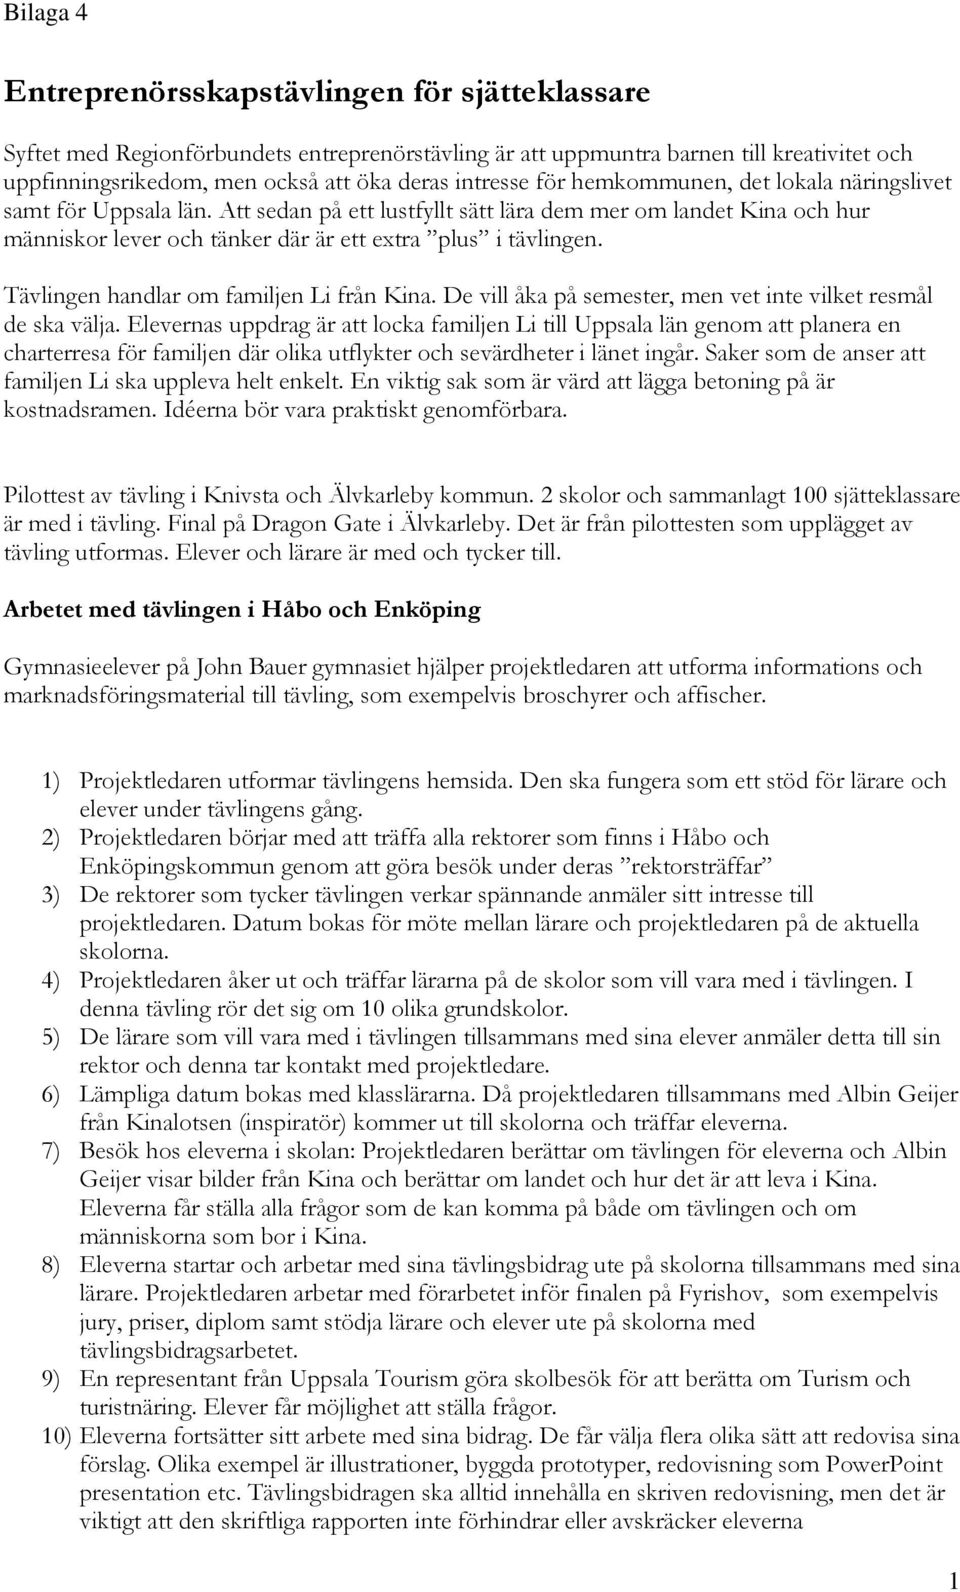 Sjätte klassare dating